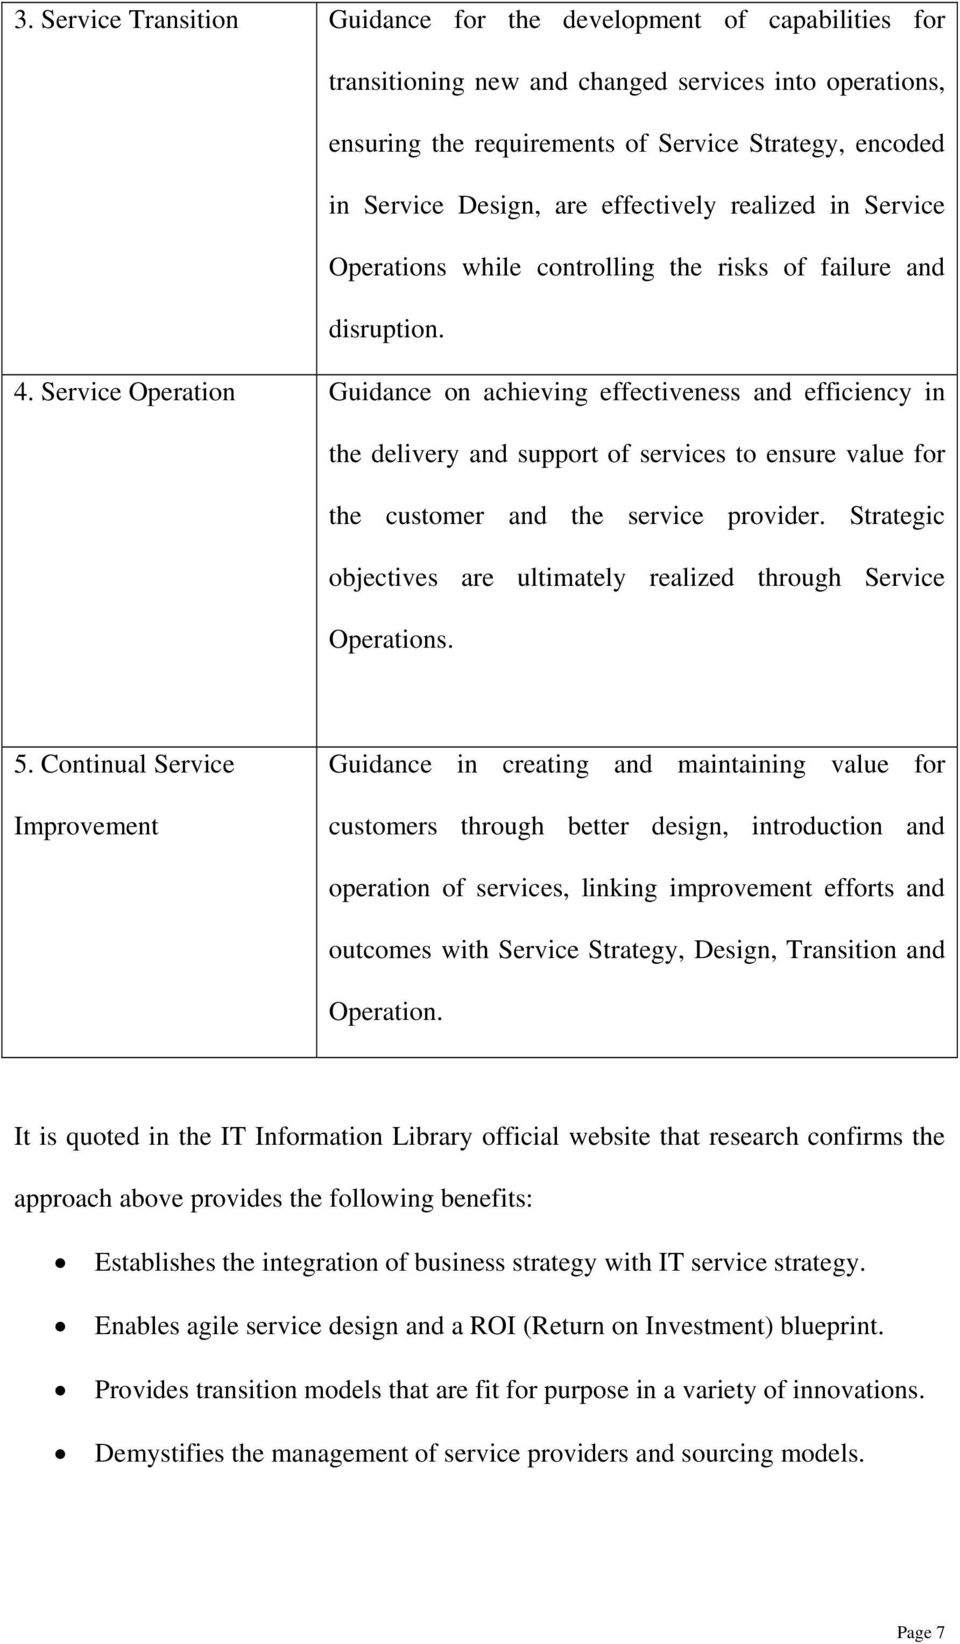 Service Operation Guidance on achieving effectiveness and efficiency in the delivery and support of services to ensure value for the customer and the service provider.